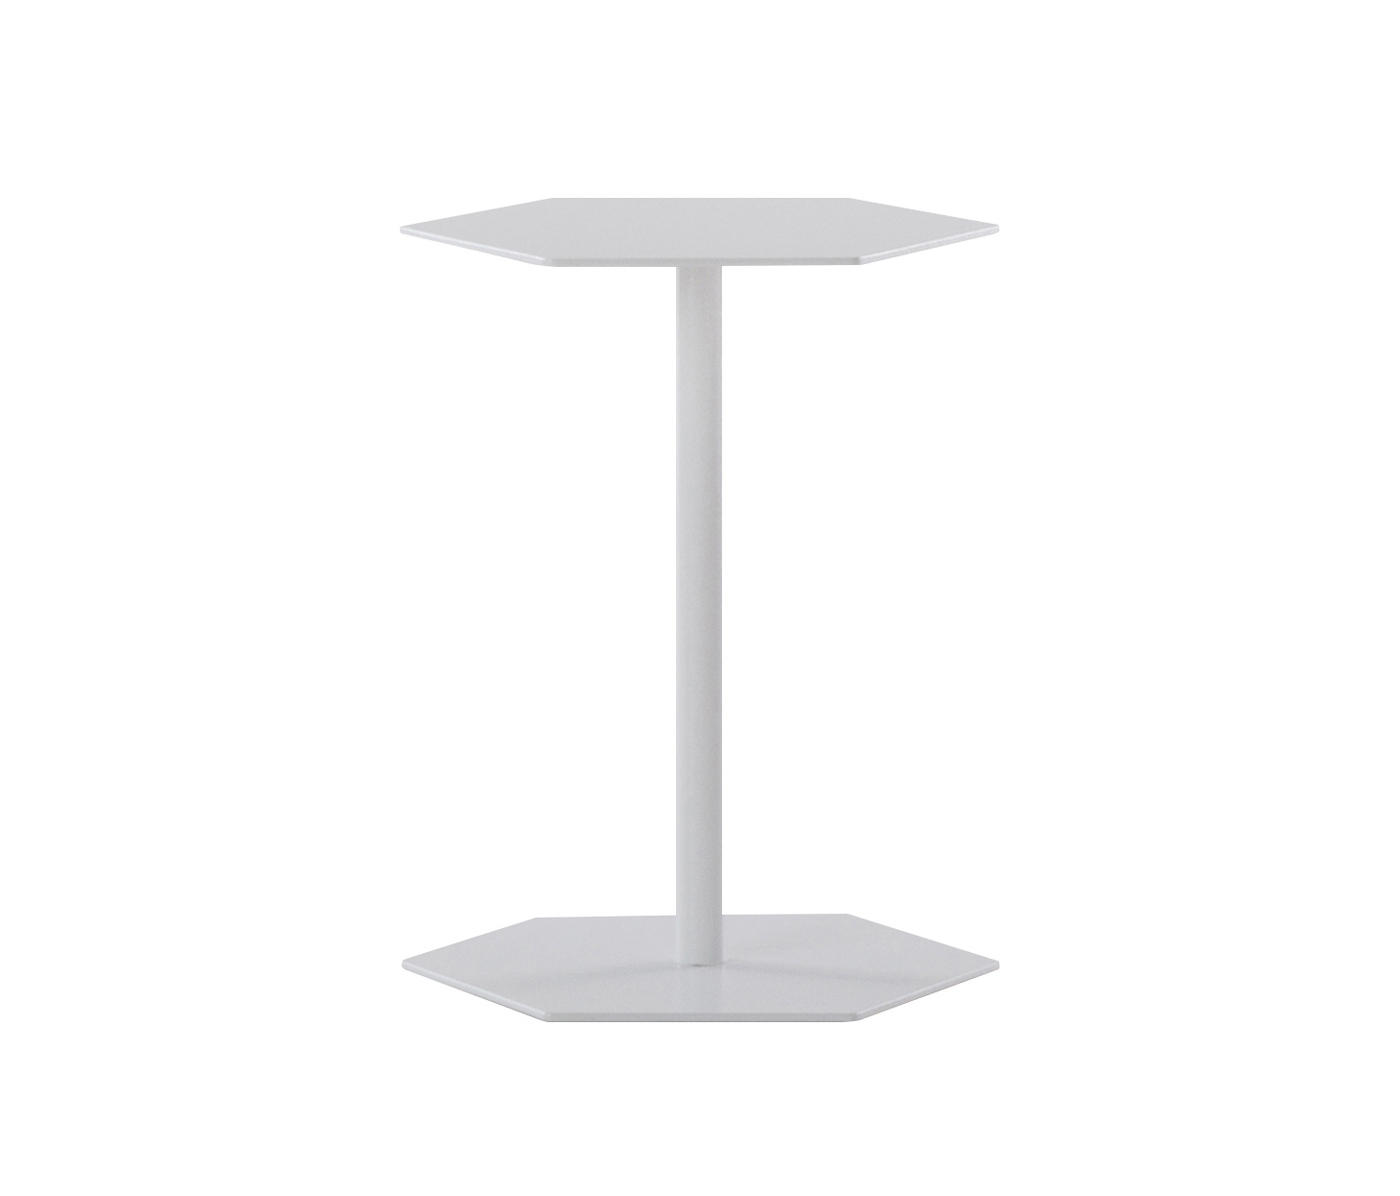 brisley outdoor accent table side tables from minotti architonic umbrella recliner stackable end small ideas silver lamps off white round coffee brass leg curved glass boat lamp